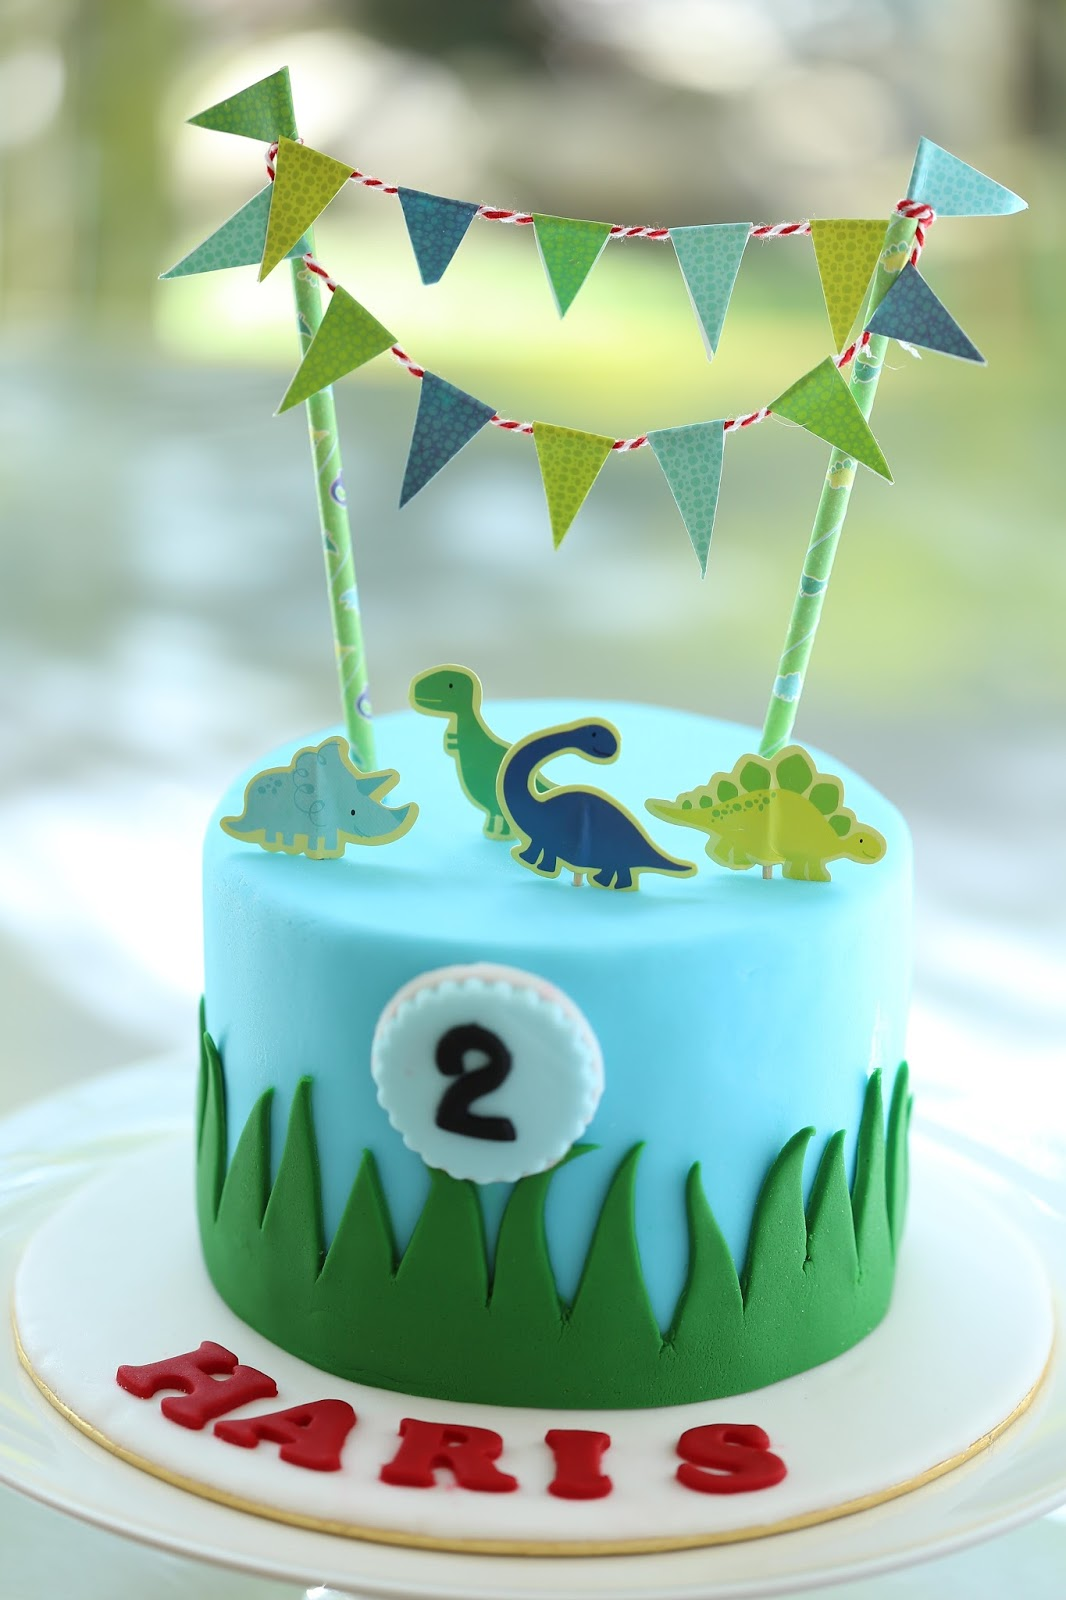 Cake Design In Kl : At Nineteen Culinary Studio - Cooking School in Kuala ...